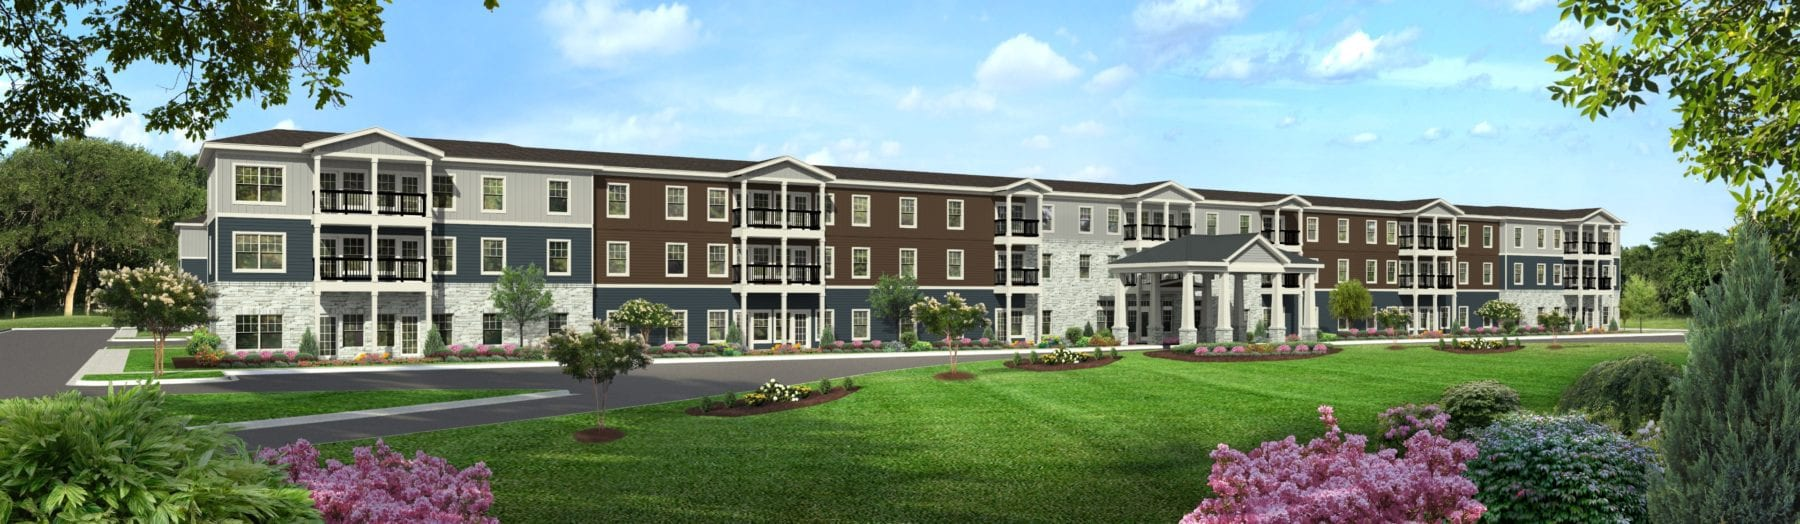 rendering of exterior prime west knoxville independent living community